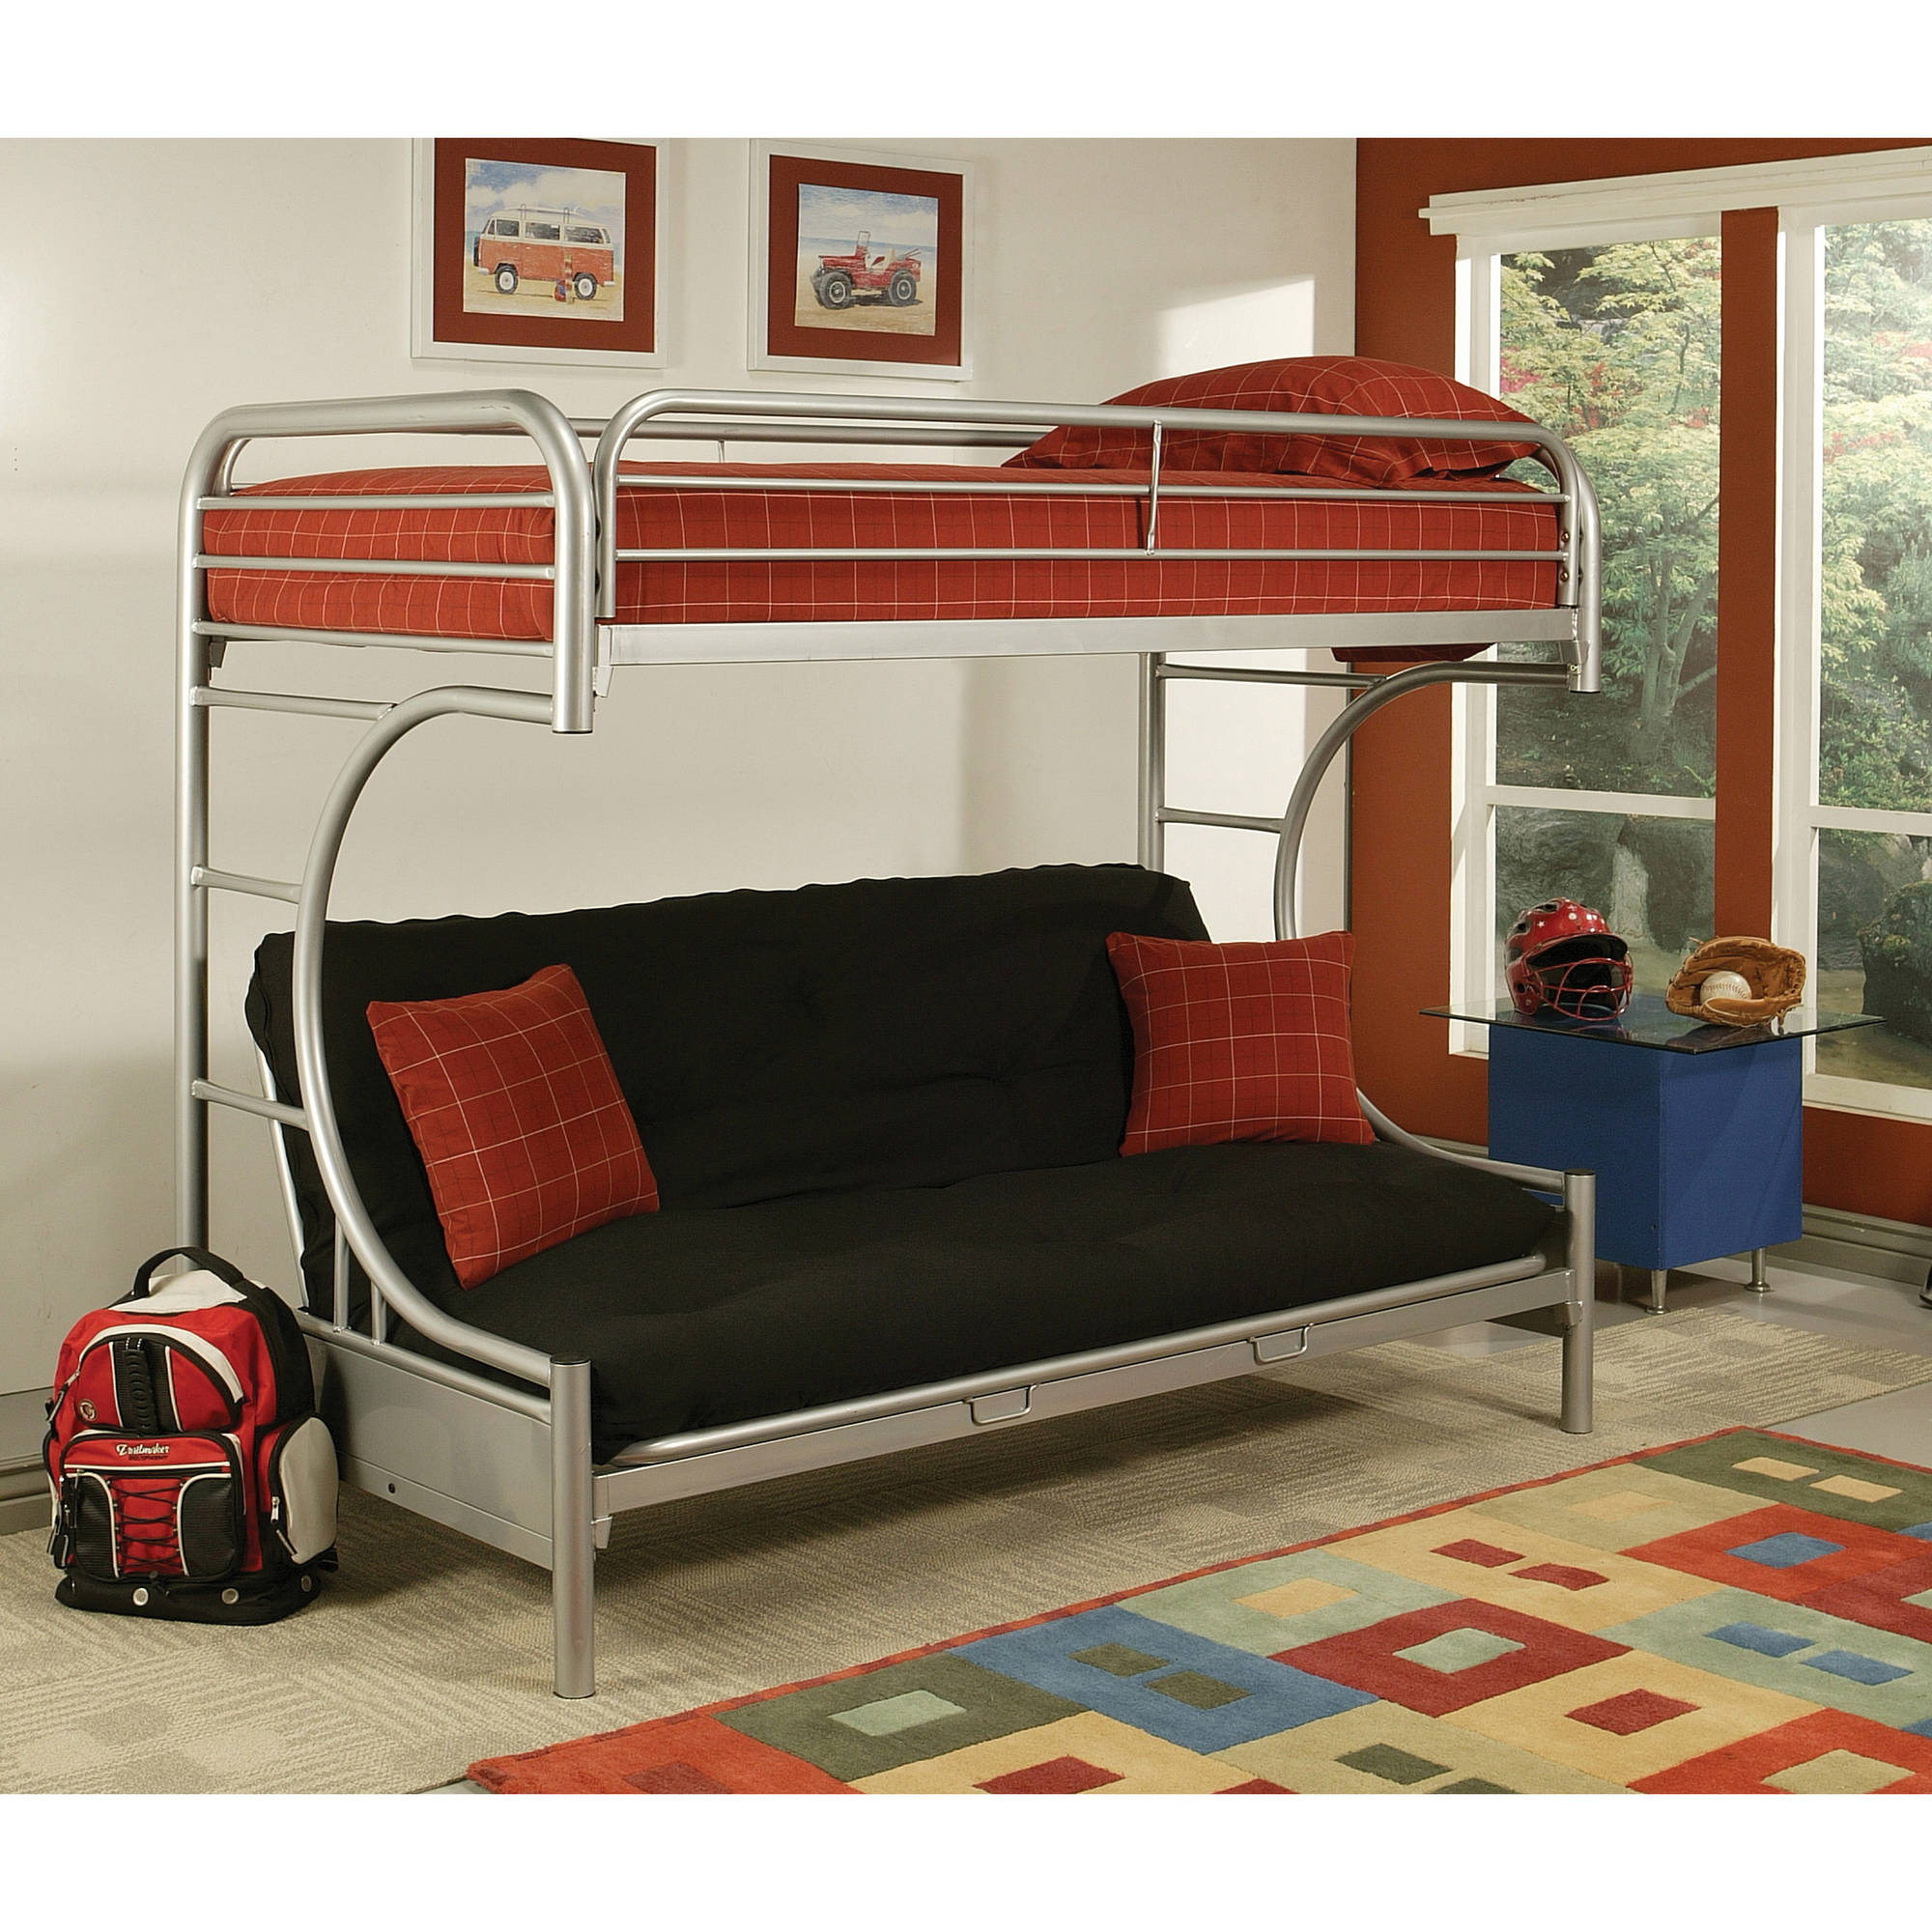 Eclipse Twin XL Queen Futon Bunk Bed, Silver by Acme Furniture